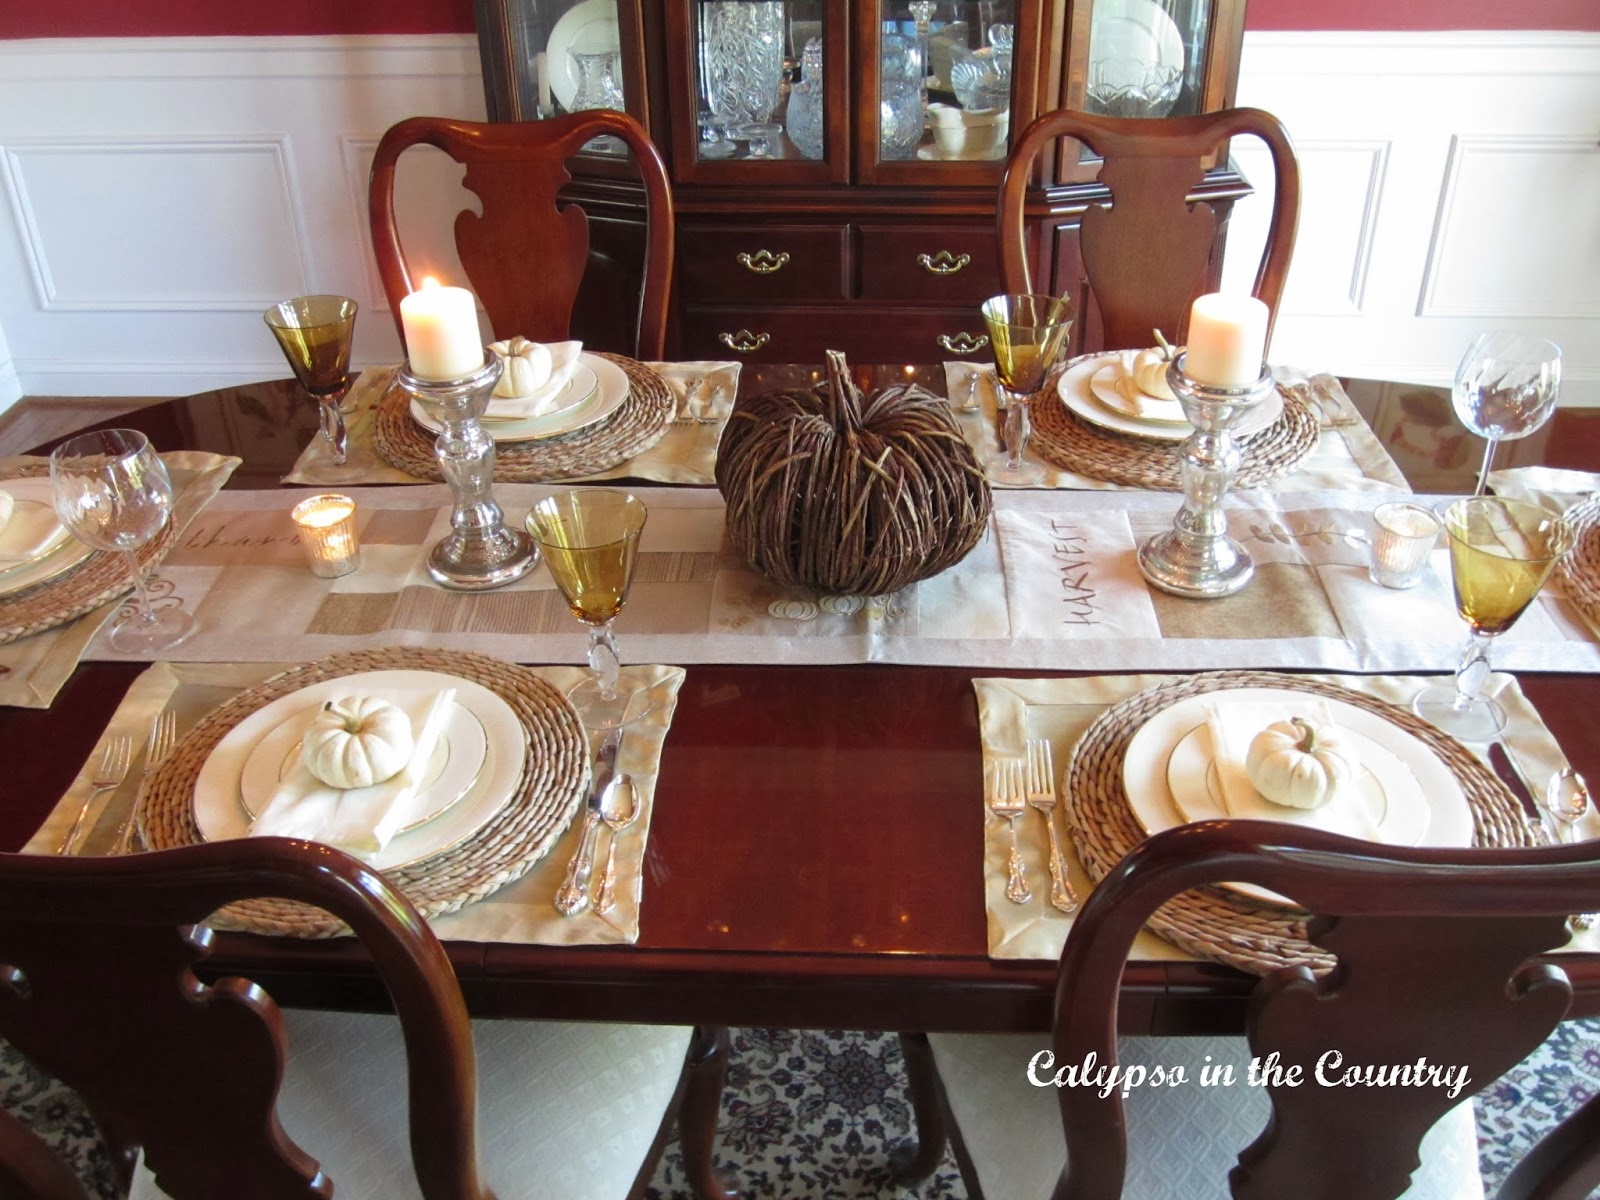 Fall Table Setting in the Dining Room